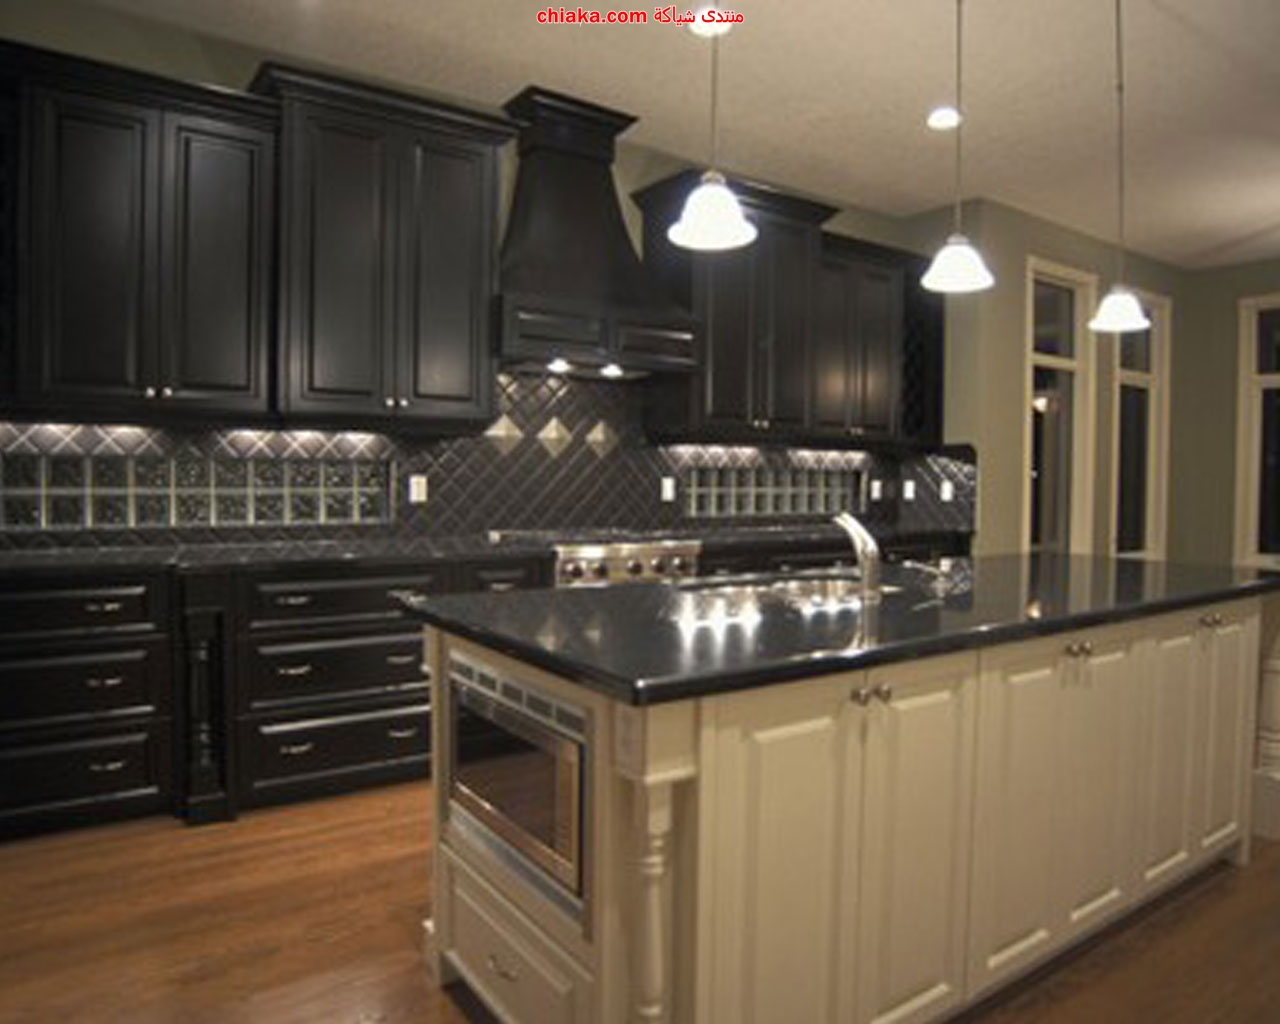 black and wood kitchen cabinets ديكورات مطابخ 2013 12316